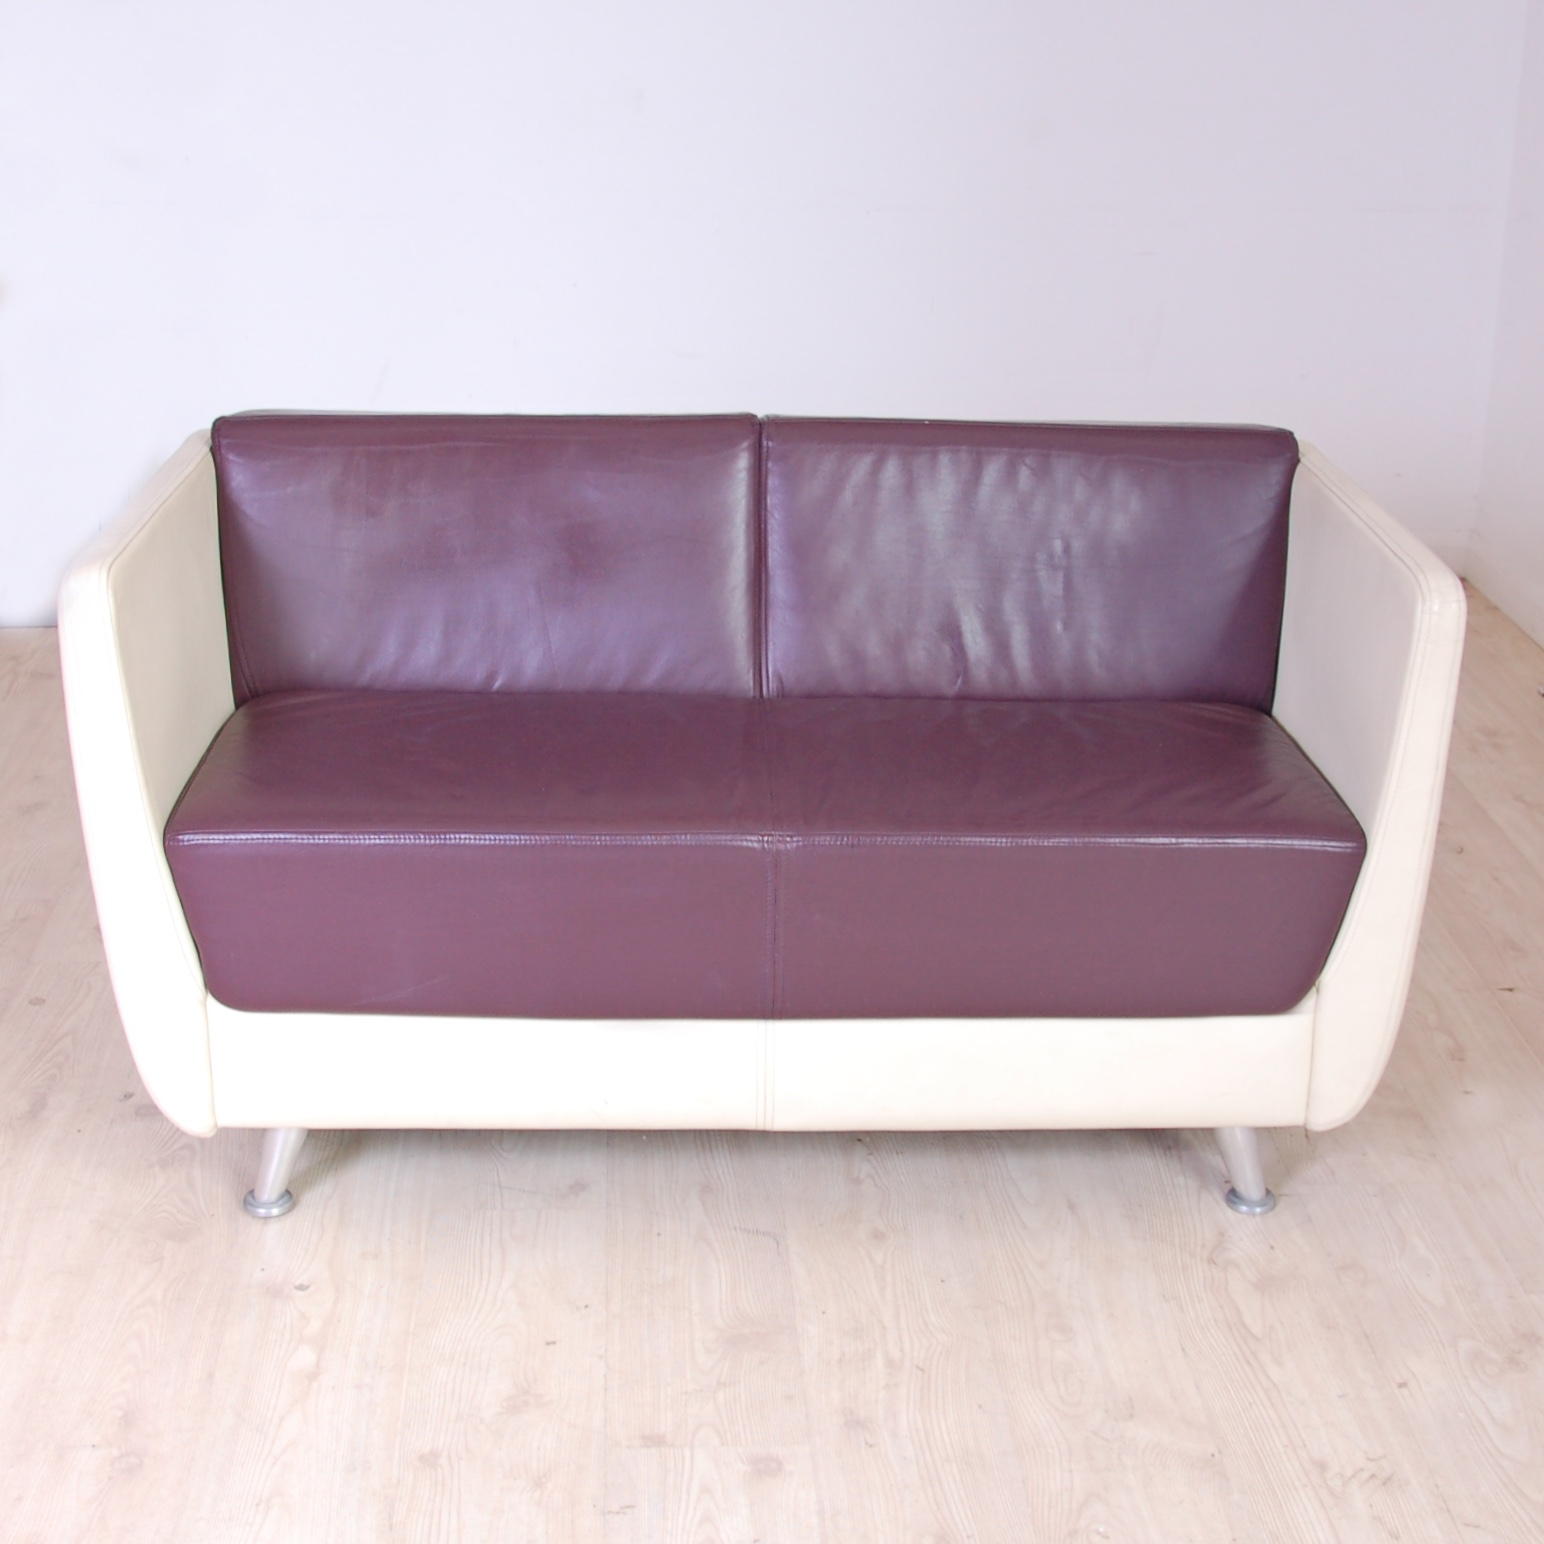 Reception Two Seater Sofa cream and maroon sofa